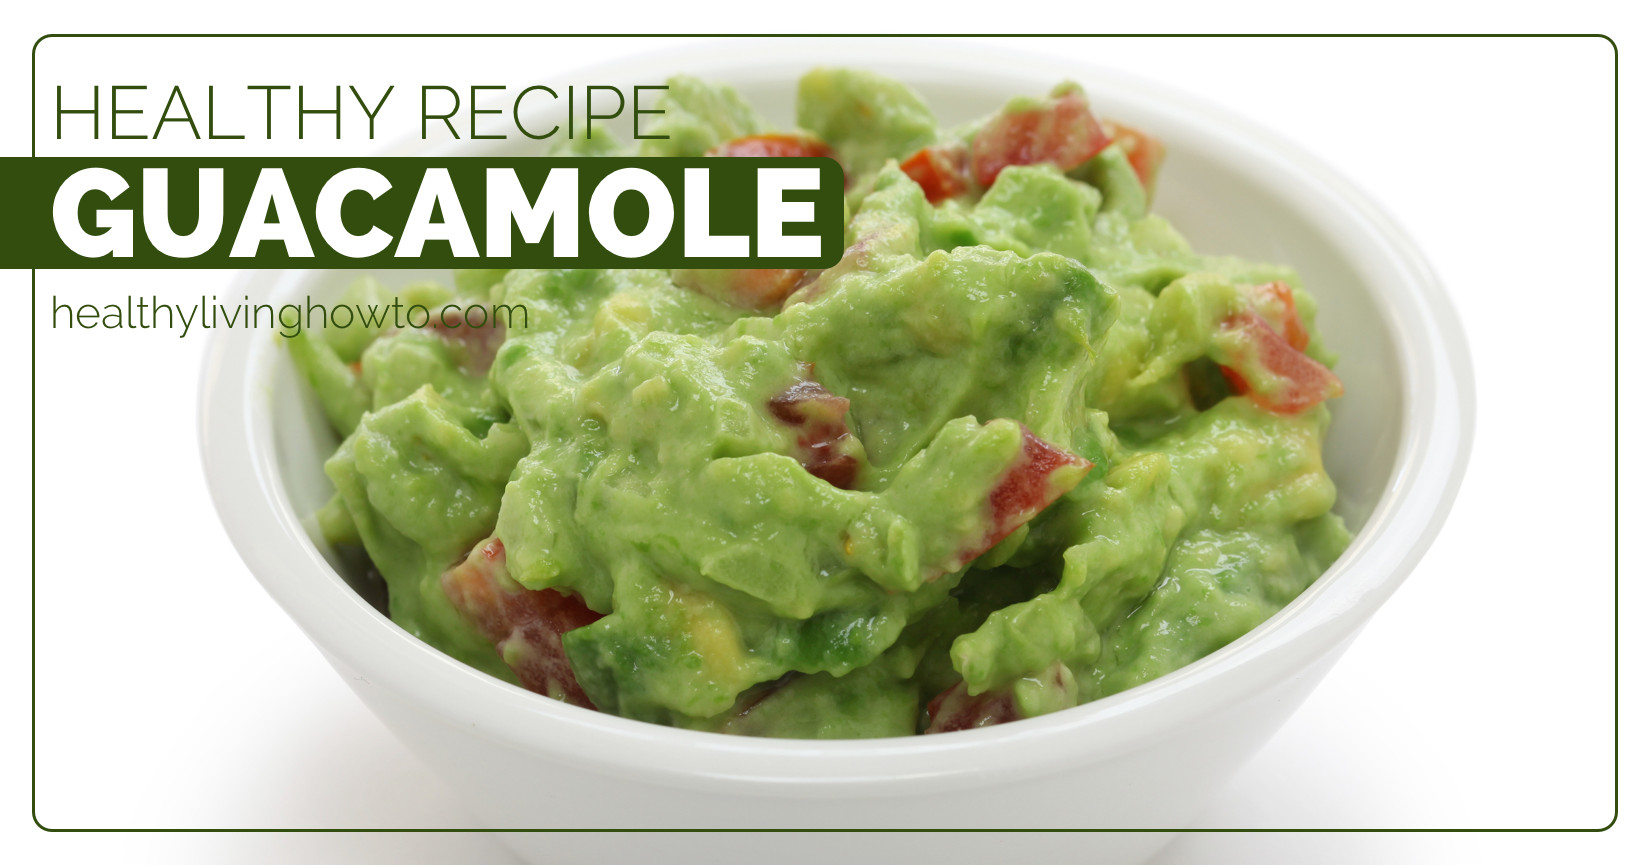 Healthy Guacamole Recipe  Healthy Recipe Guacamole